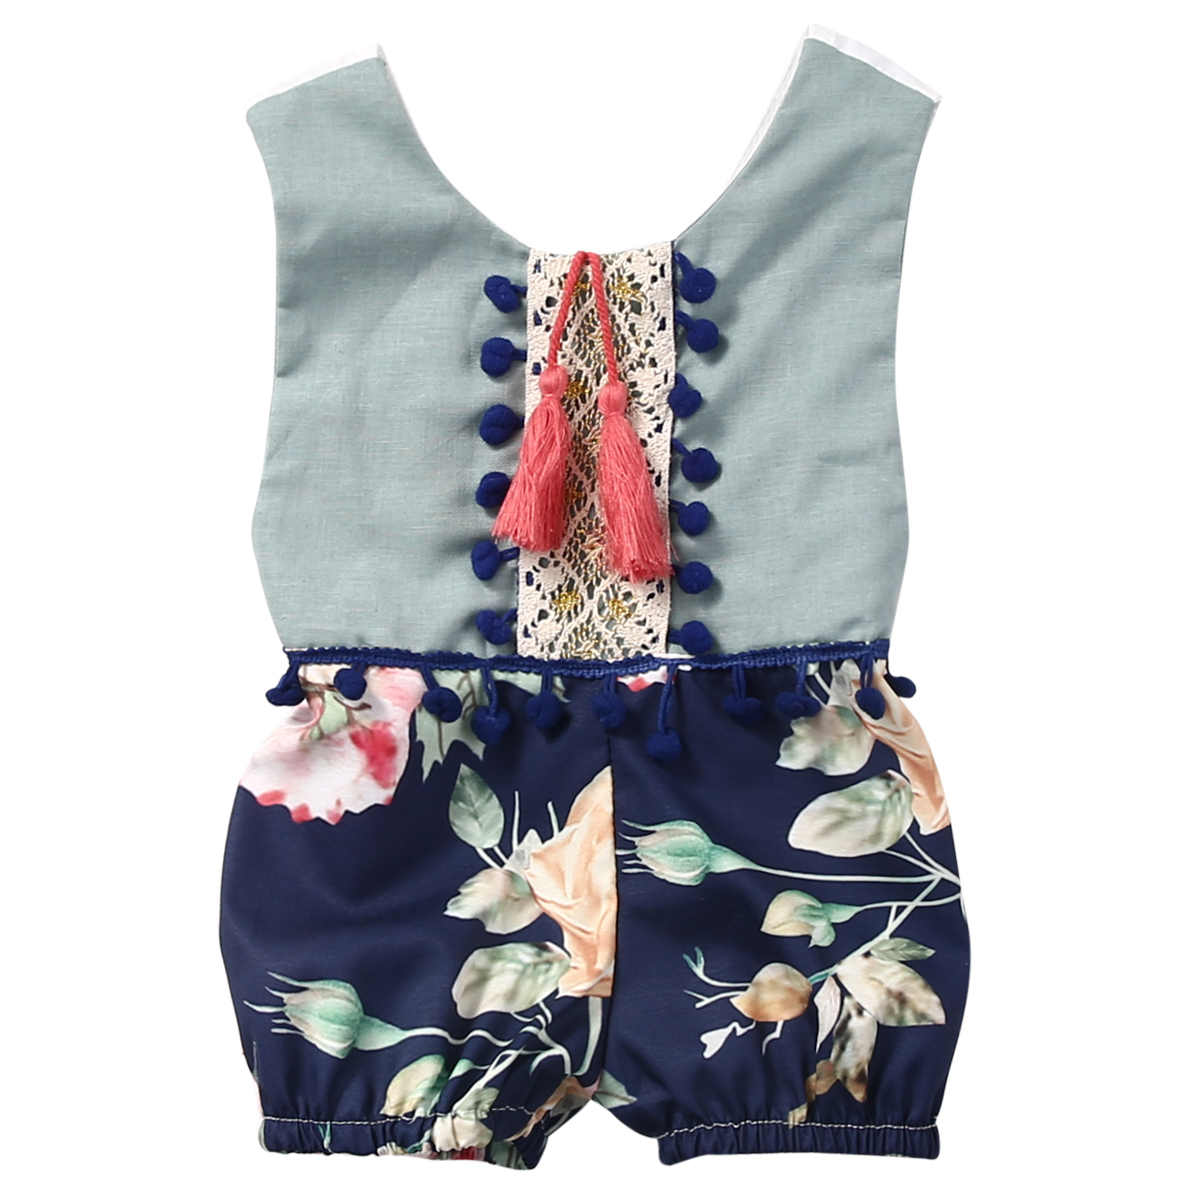 c939c4c1c Detail Feedback Questions about Pudcoco Kids Dungaree Shorts For ...